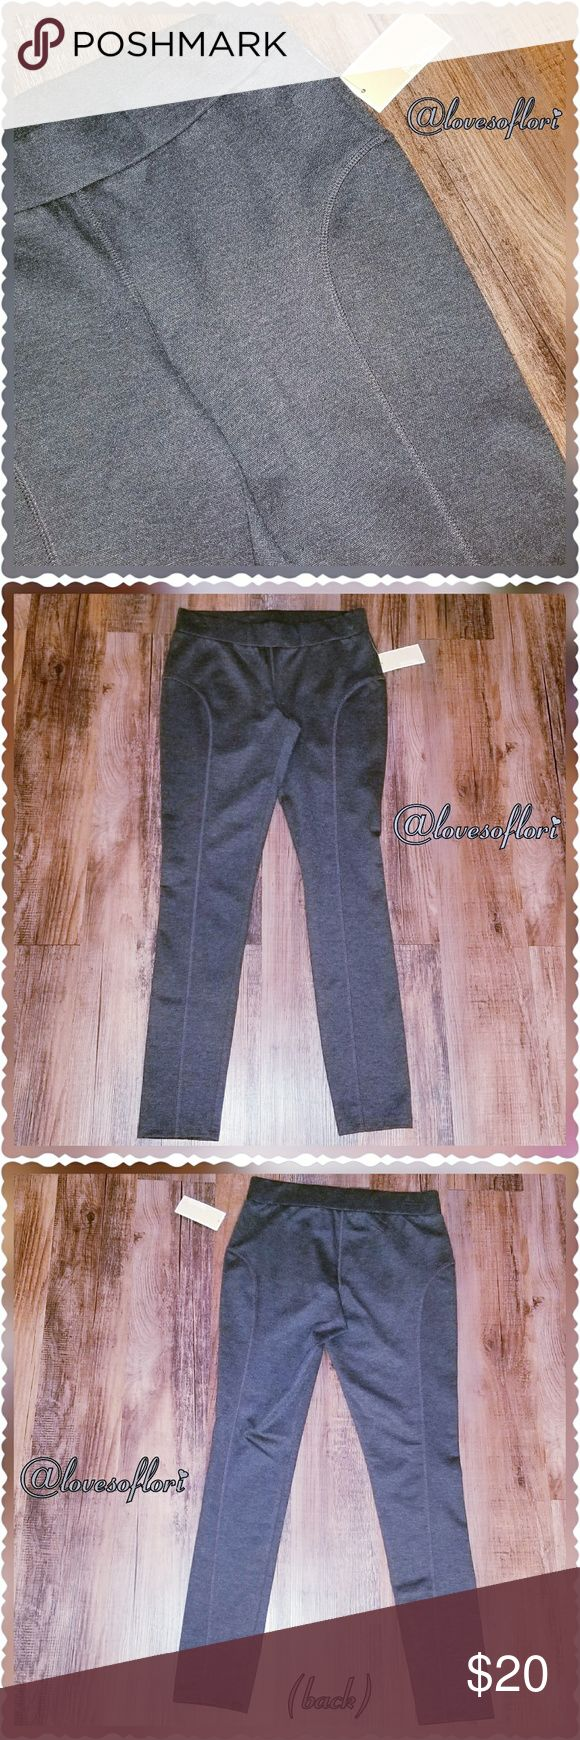 """MICHAEL Michael Kors Derby NWT MICHAEL Michael Kors Size Medium Derby Leggings in Charcoal.  70% Polyester * 25% Rayon * 5% Spandex  Approx 9"""" Front Rise Approx 13"""" Back Rise Approx 28"""" Inseam Approx 5"""" Flat Across Leg Opening (10"""") MICHAEL Michael Kors Pants Leggings"""